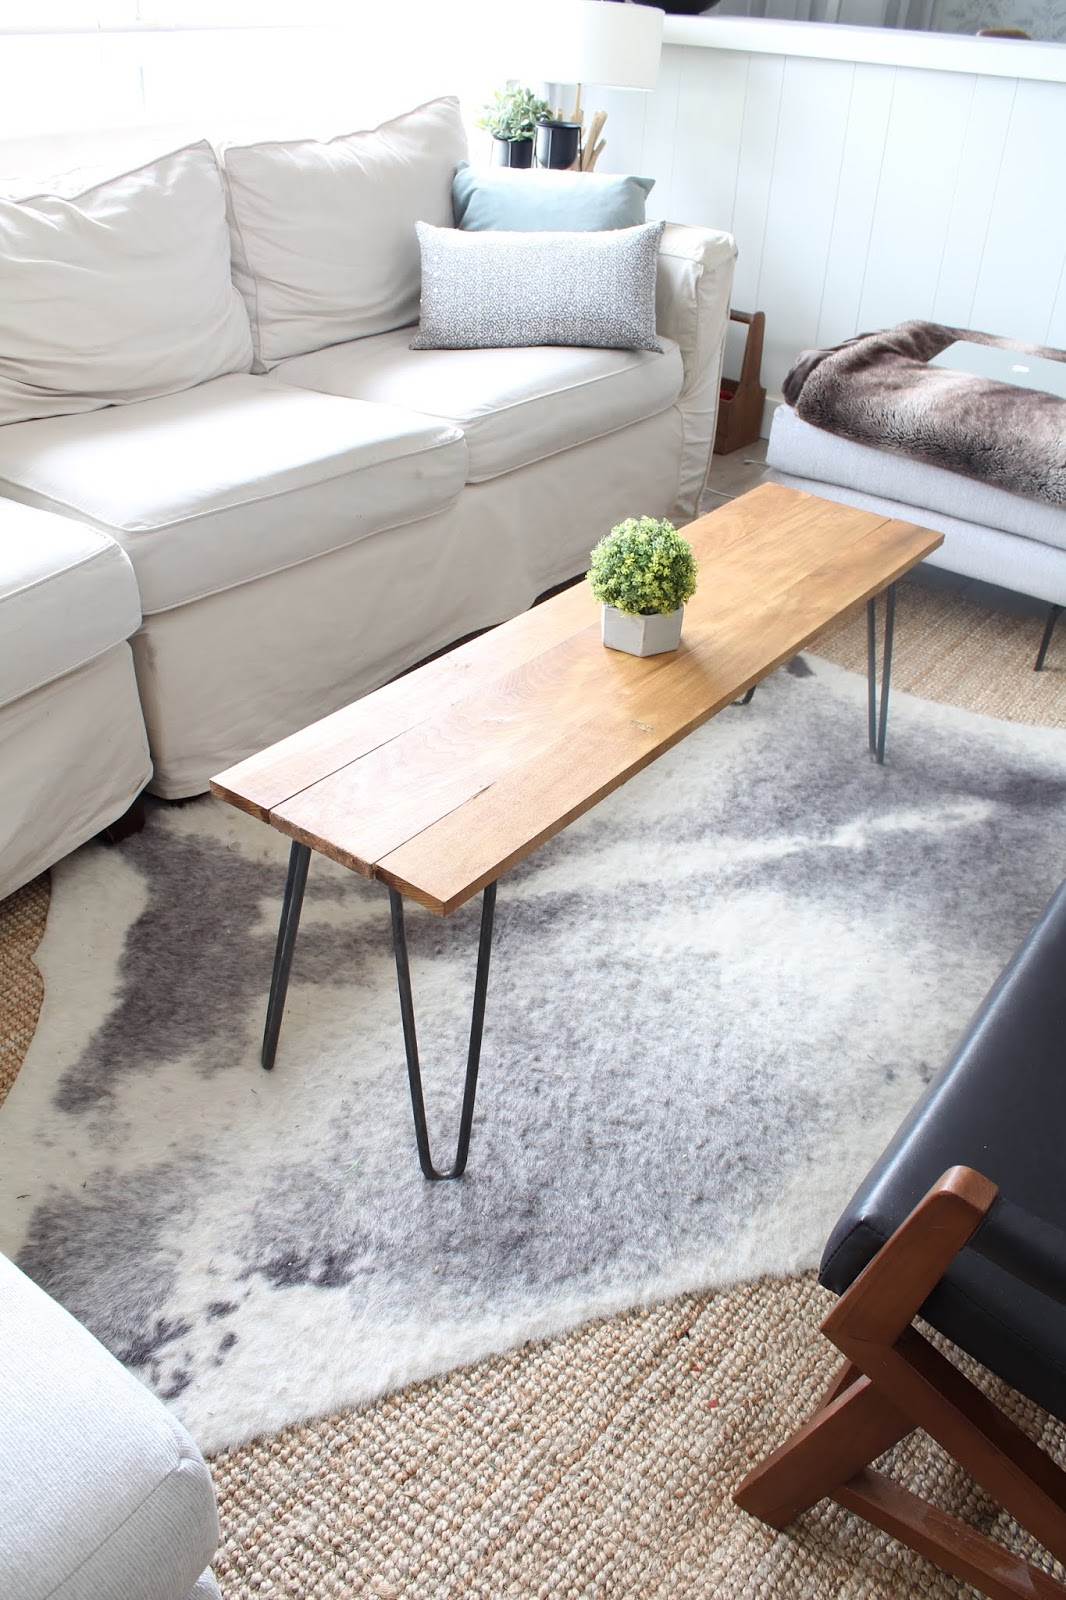 DIY-hairpin-leg-coffee-table-2